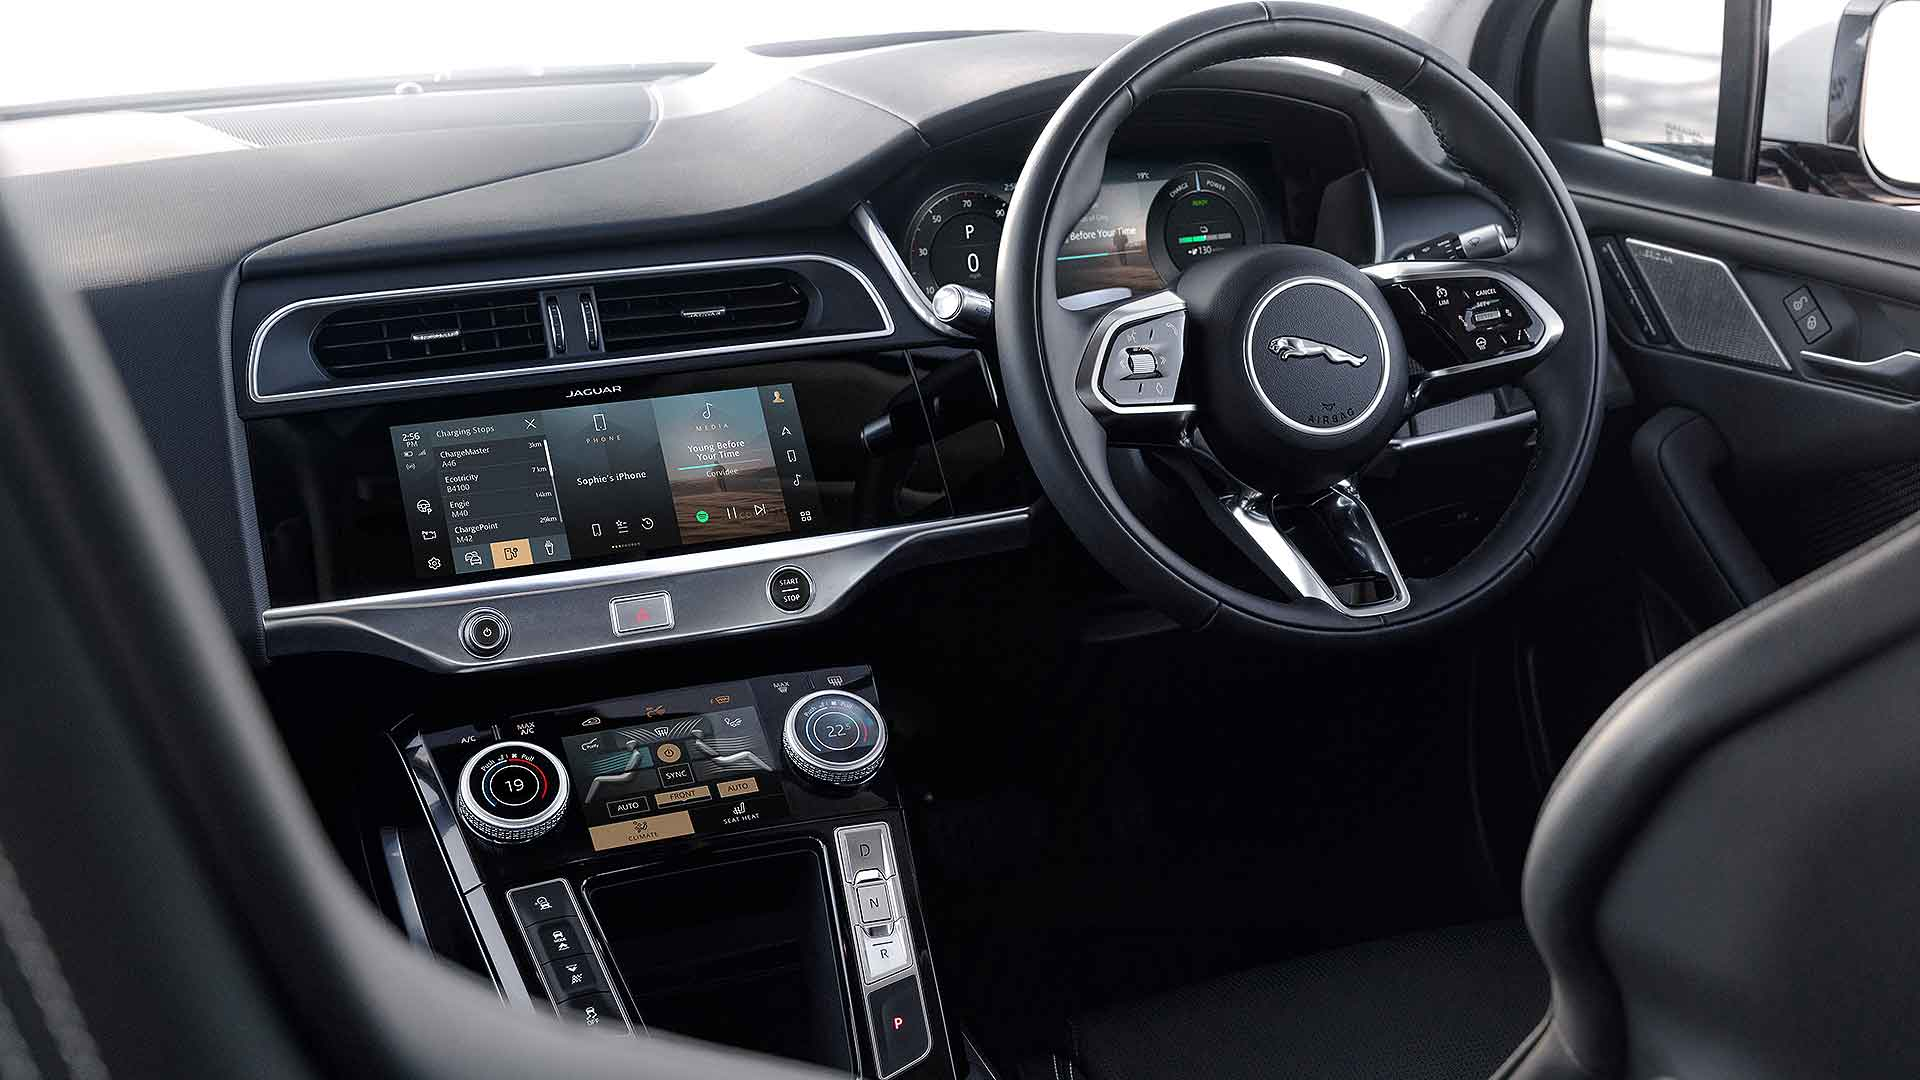 Jaguar I-Pace 21MY interior